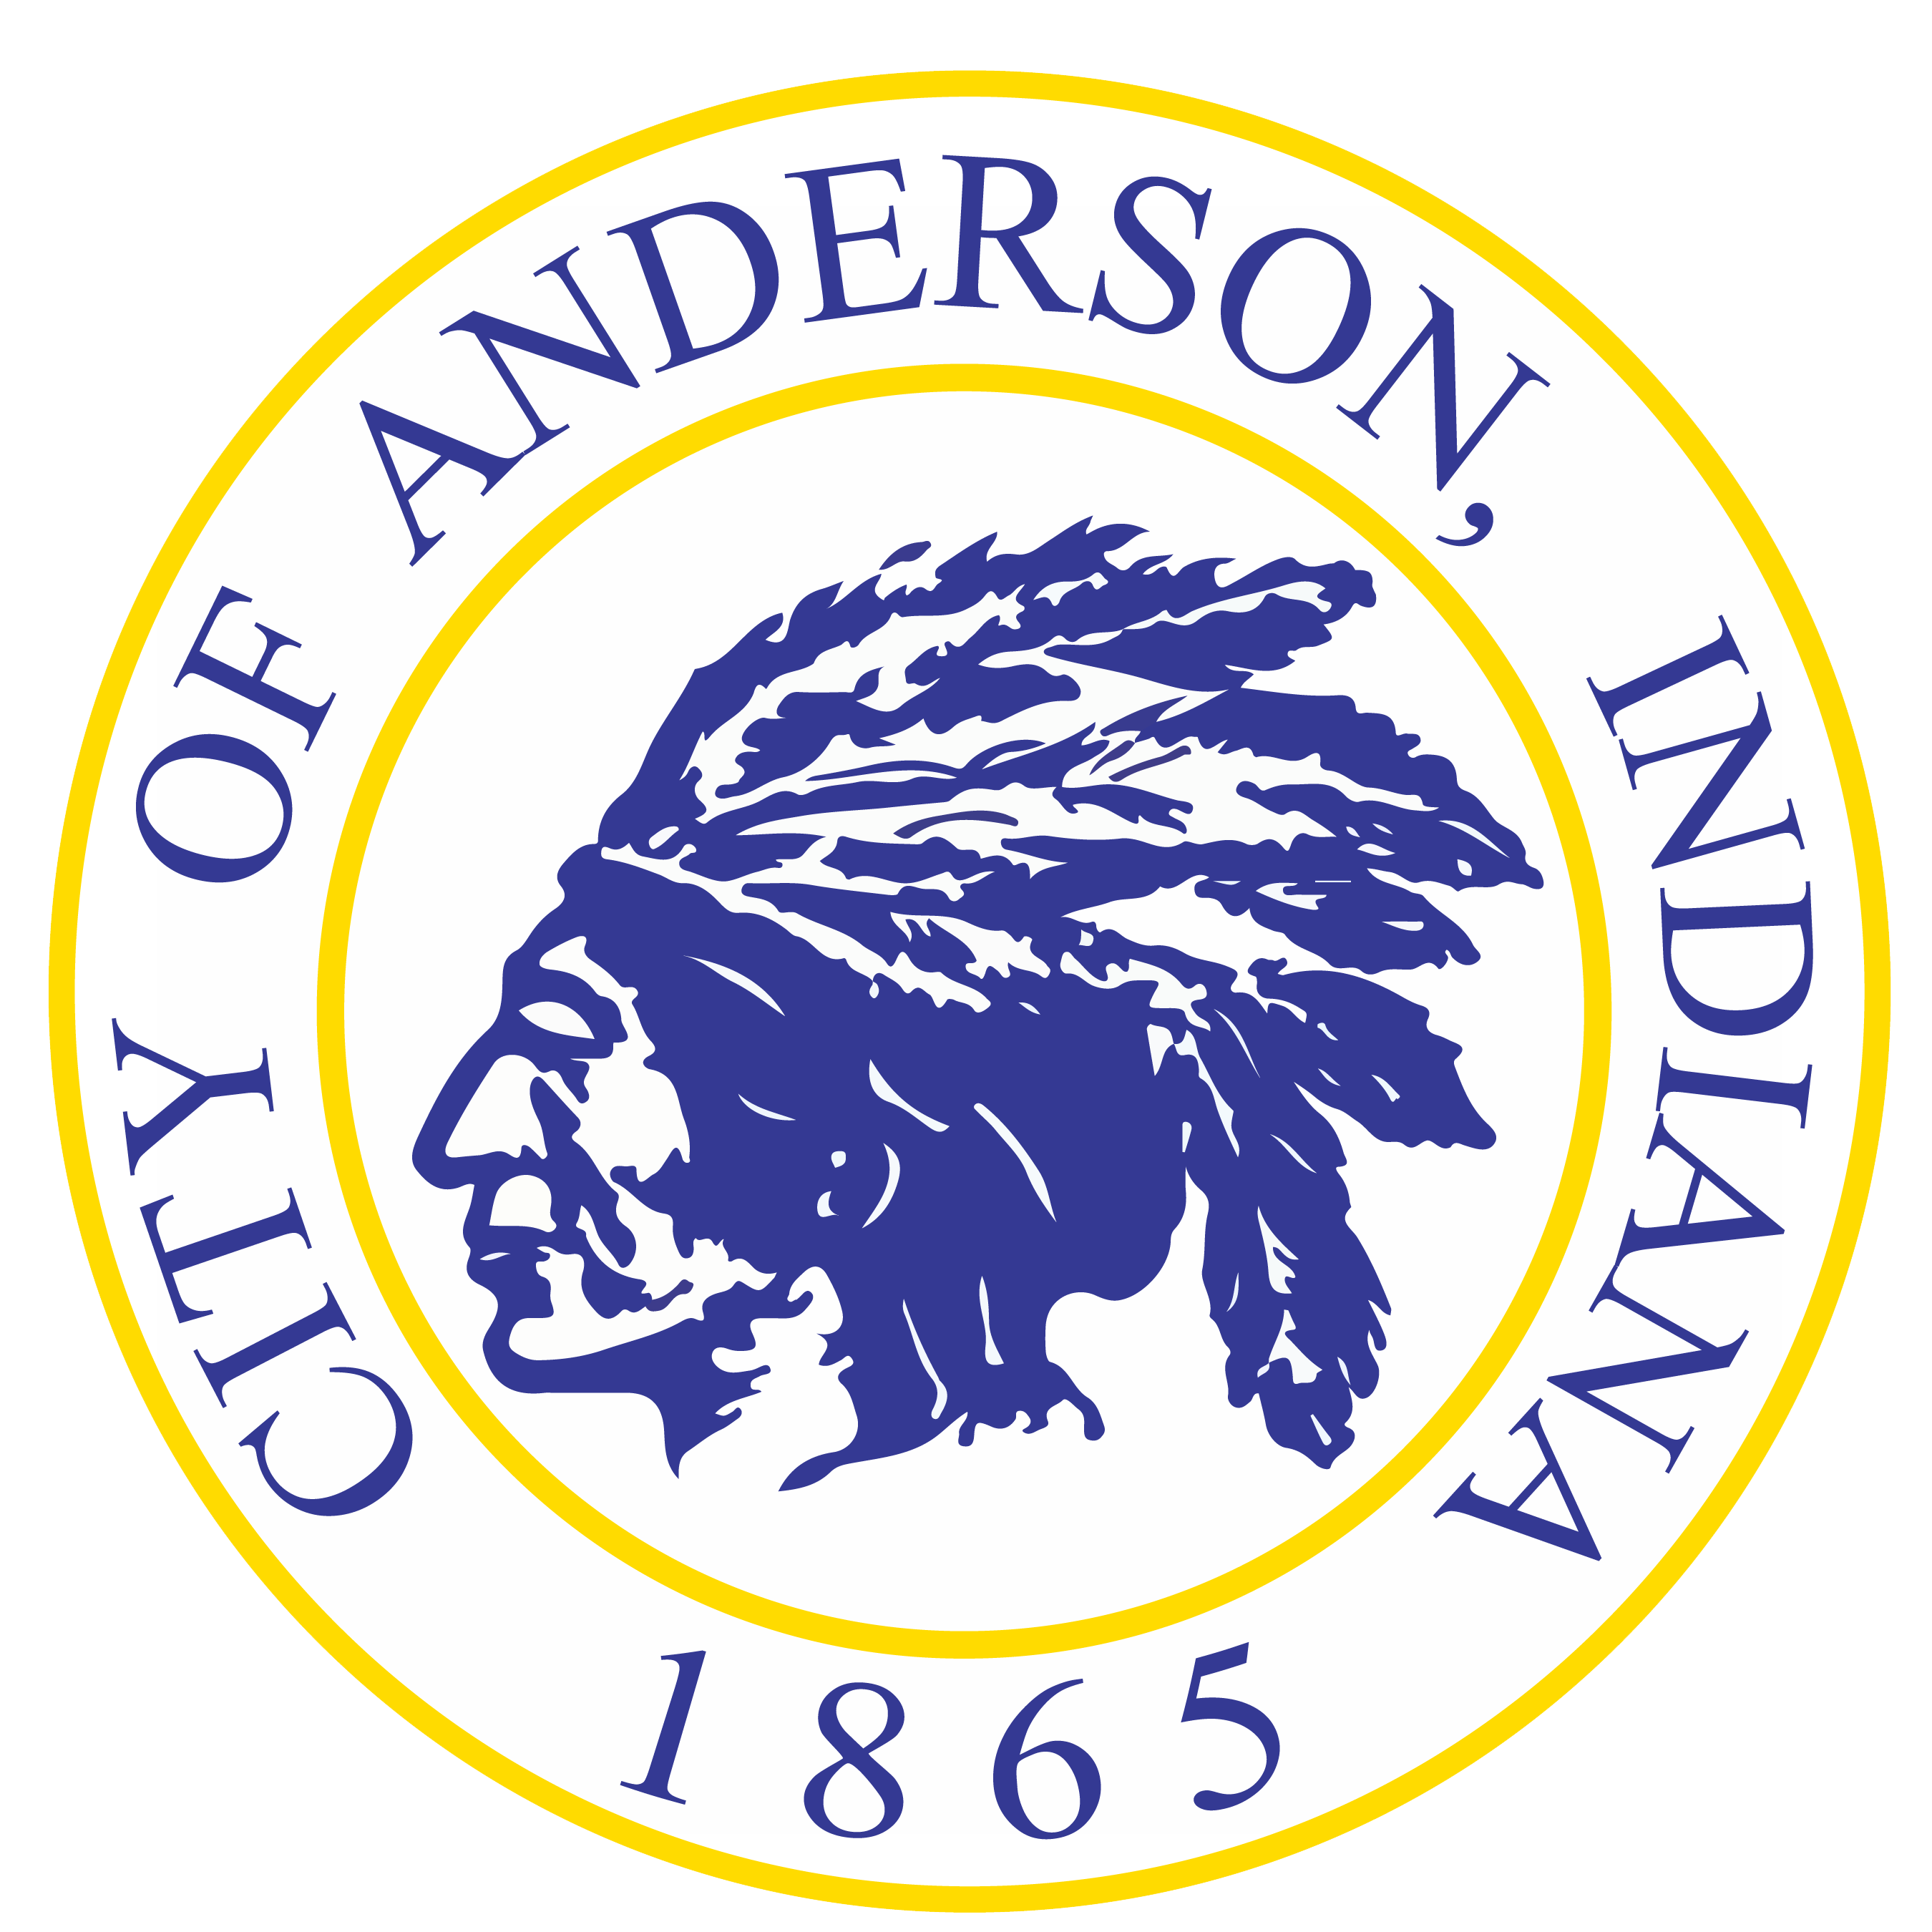 Anderson Logo Highest Resolution